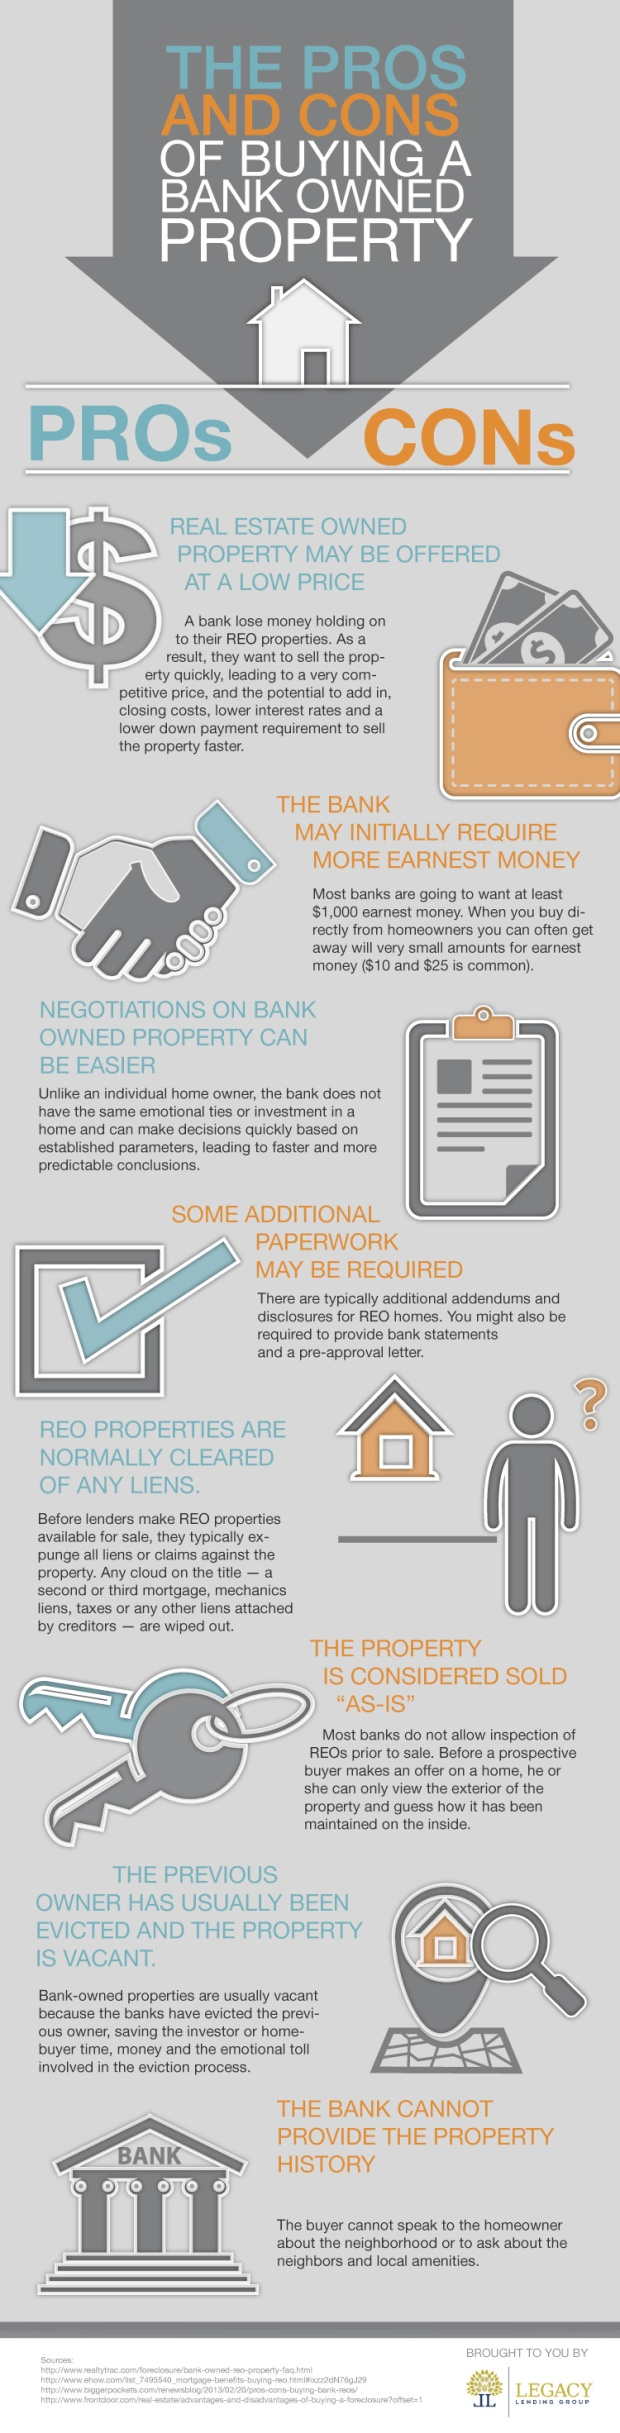 the-pros-and-cons-of-buying-a-bank-owned-property_5257e25475814